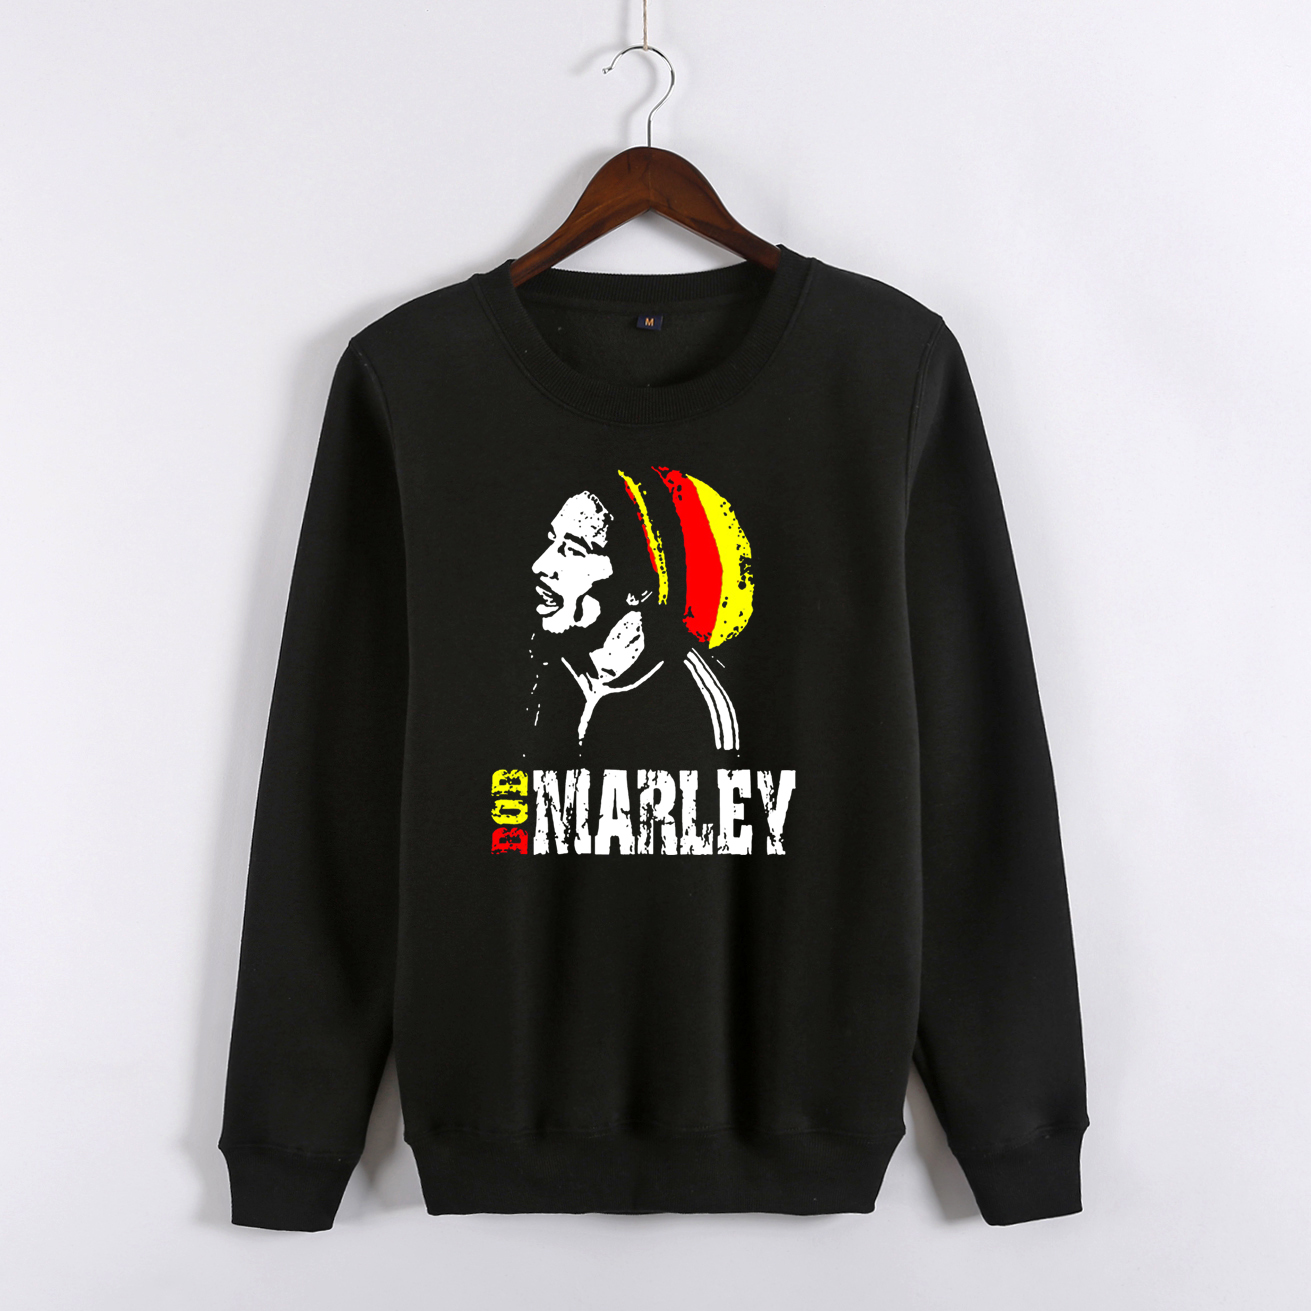 Autumn winter thickening outerwear Jamaican Reggae Print men s clothing casual bob marley long sleeve pullover